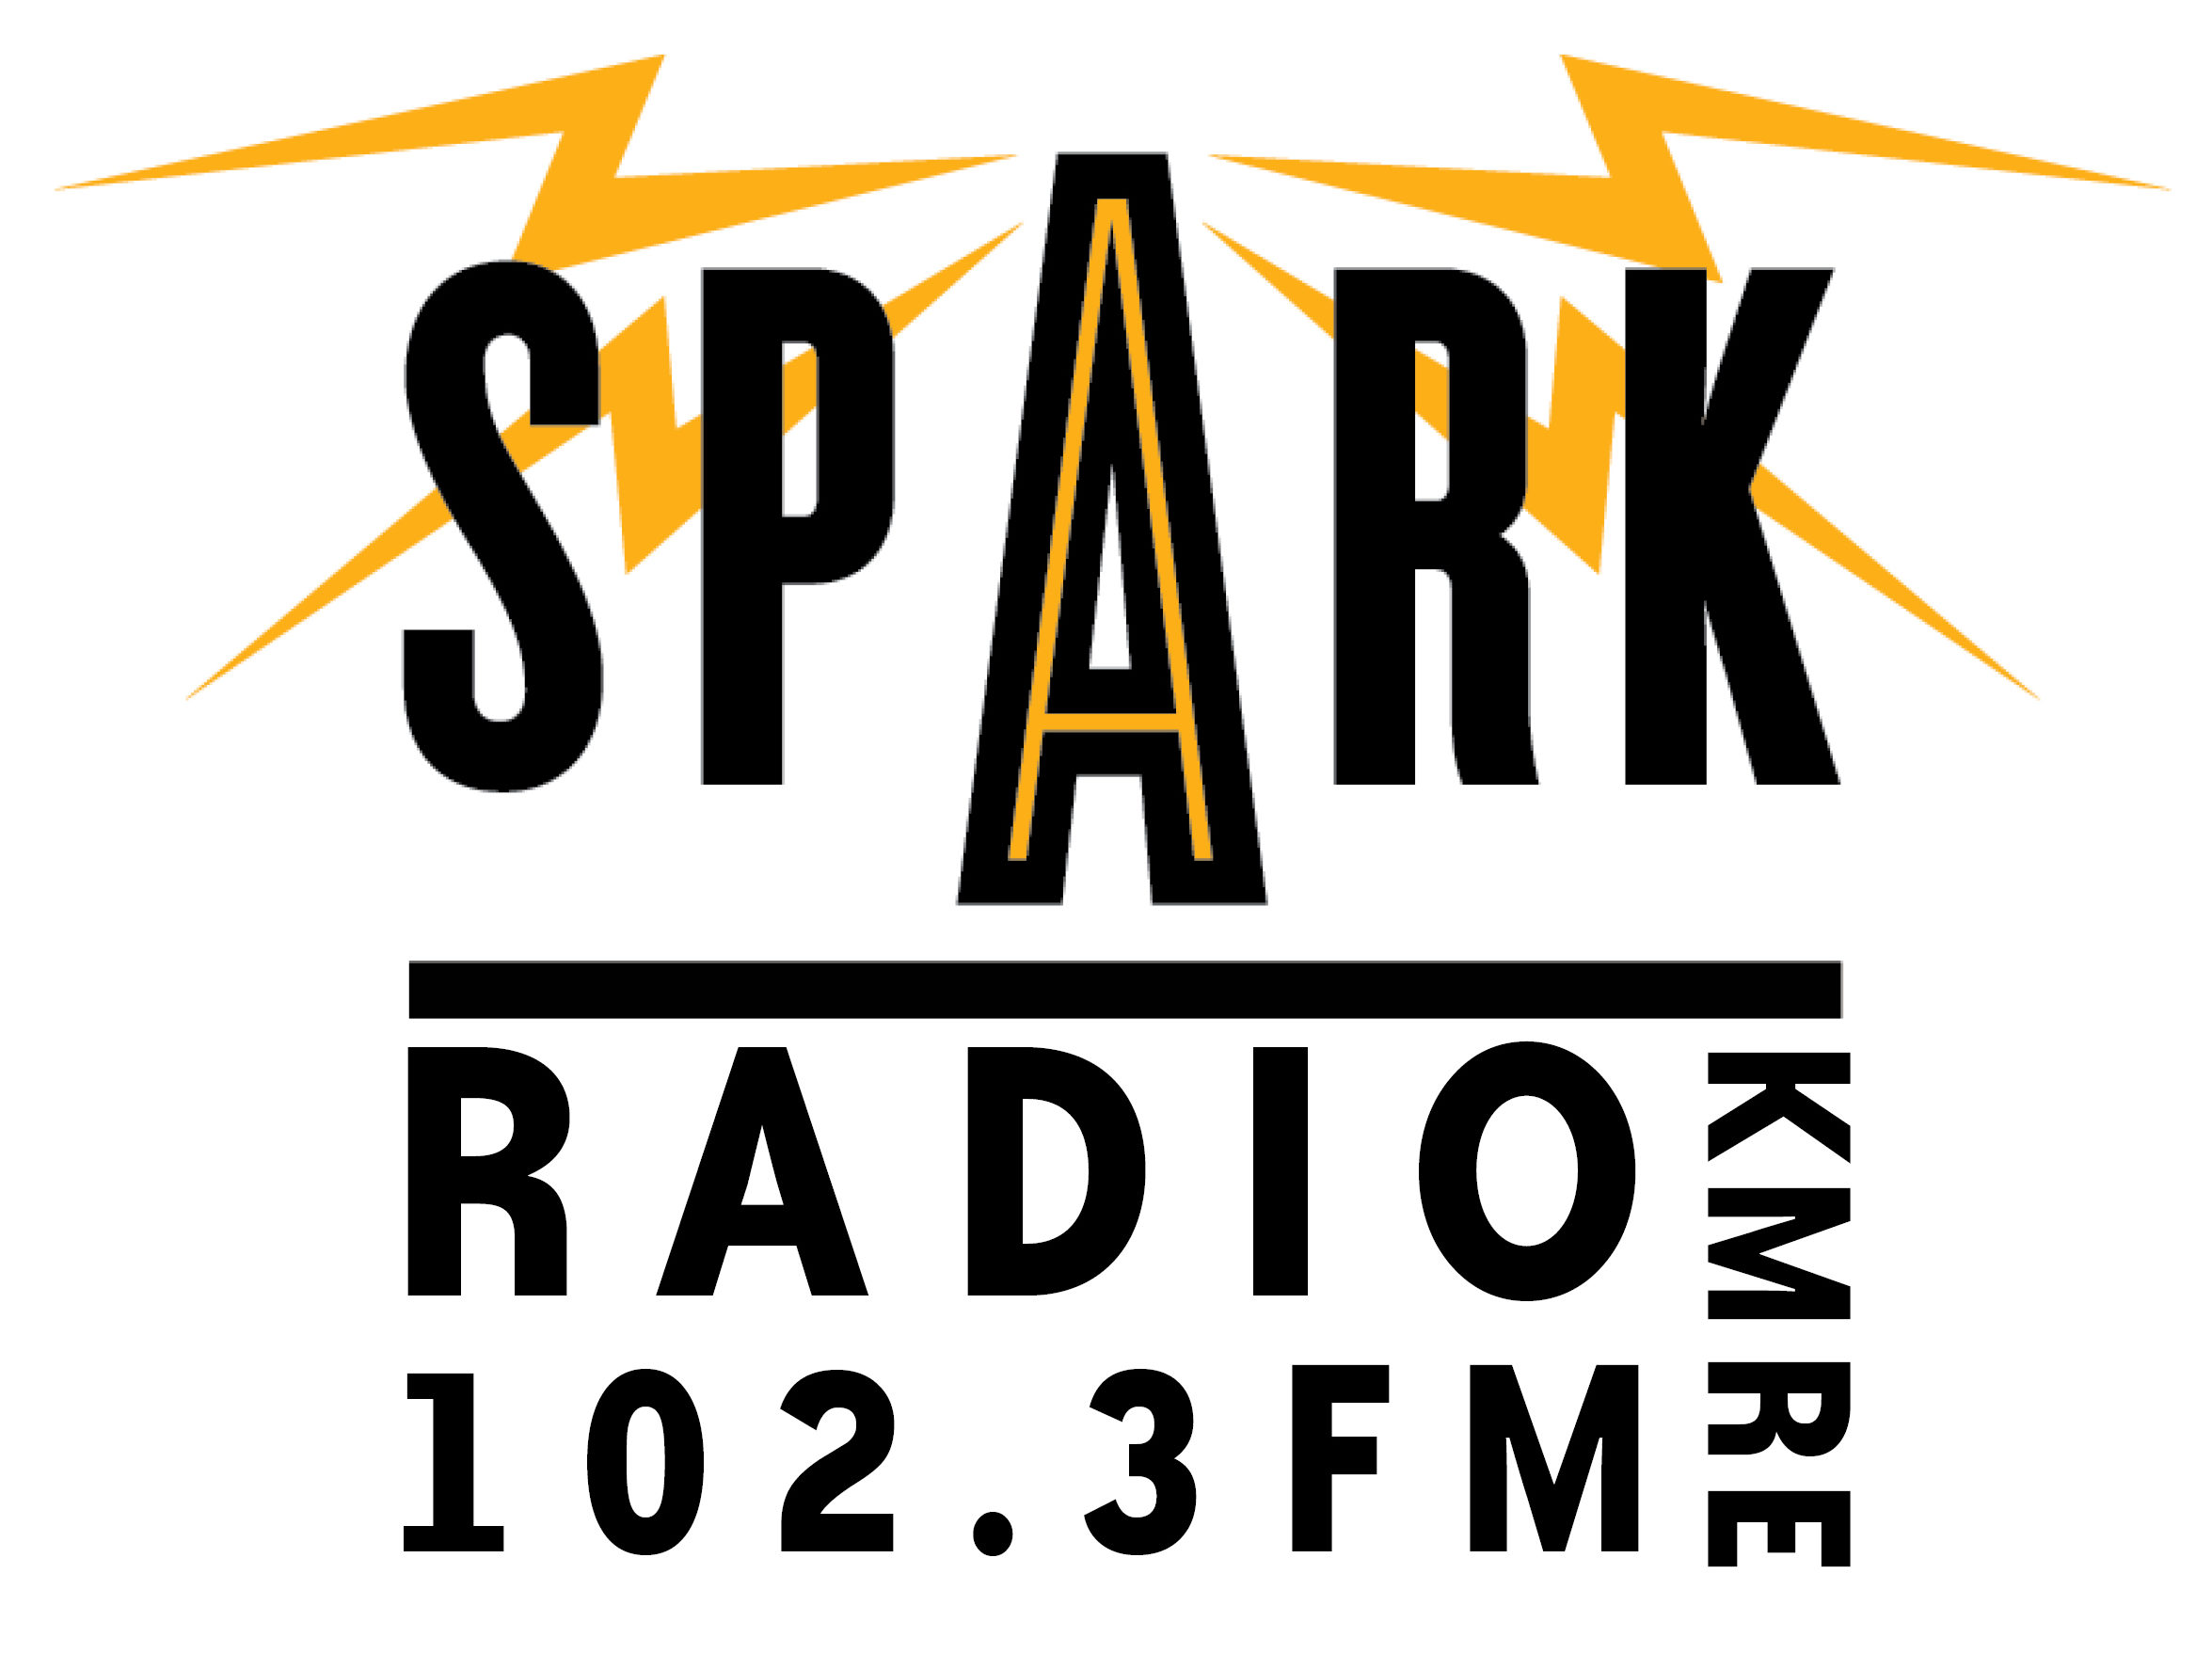 Reprogram Your Health Radio is recorded at the Spark Museum of Electrical Invention and broadcasted on KMRE 102.3 FM